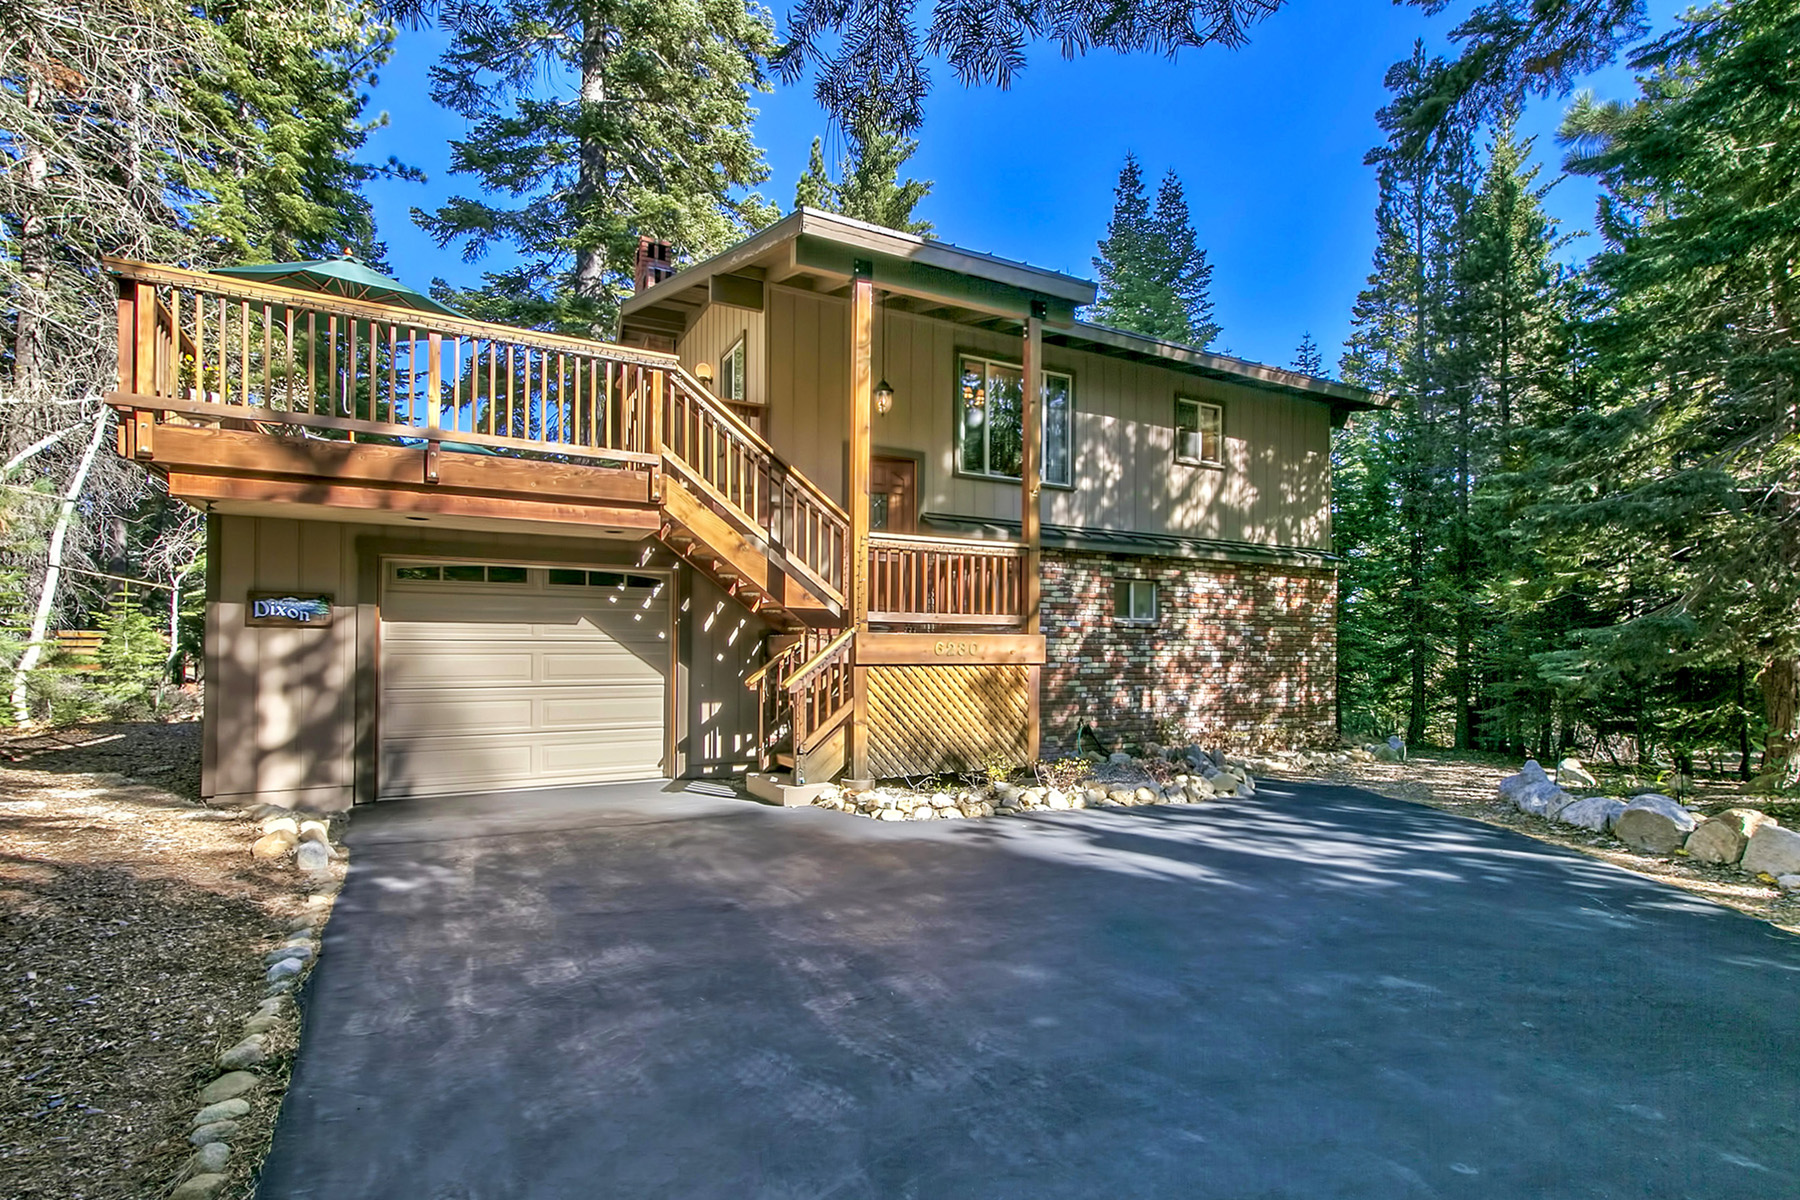 Single Family Home for Active at 5620 Flicker Avenue 6230 Flicker Avenue Homewood, California 96141 United States